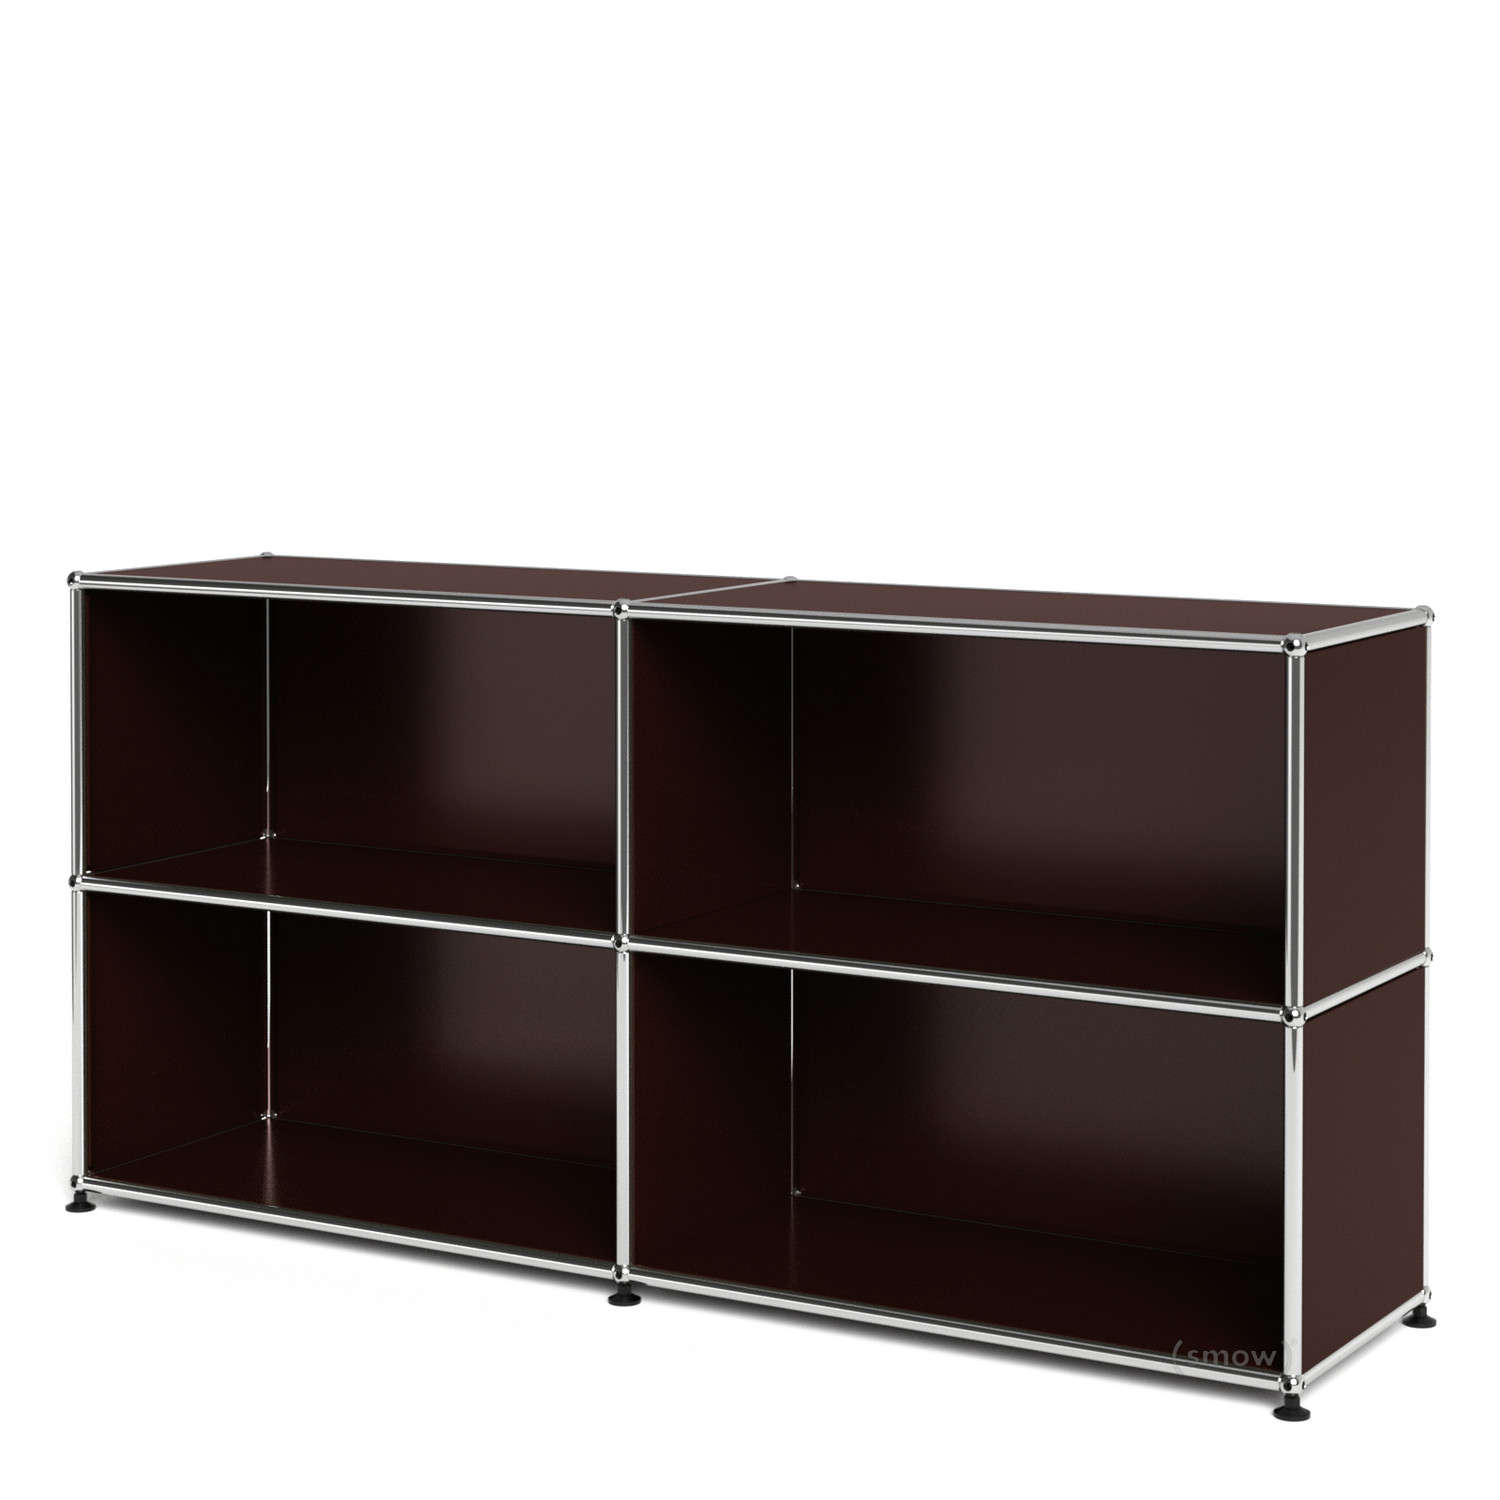 Usm haller sideboard l open usm brown by fritz haller for Sideboard usm